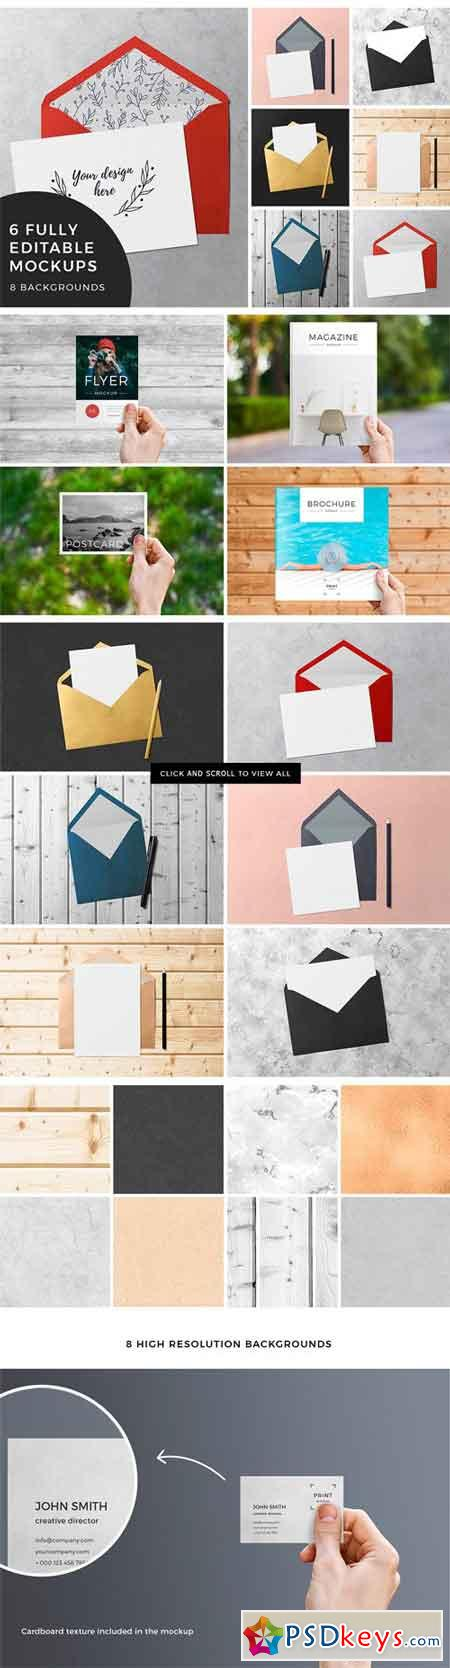 2 in 1 Print Mockups Bundle 1680414